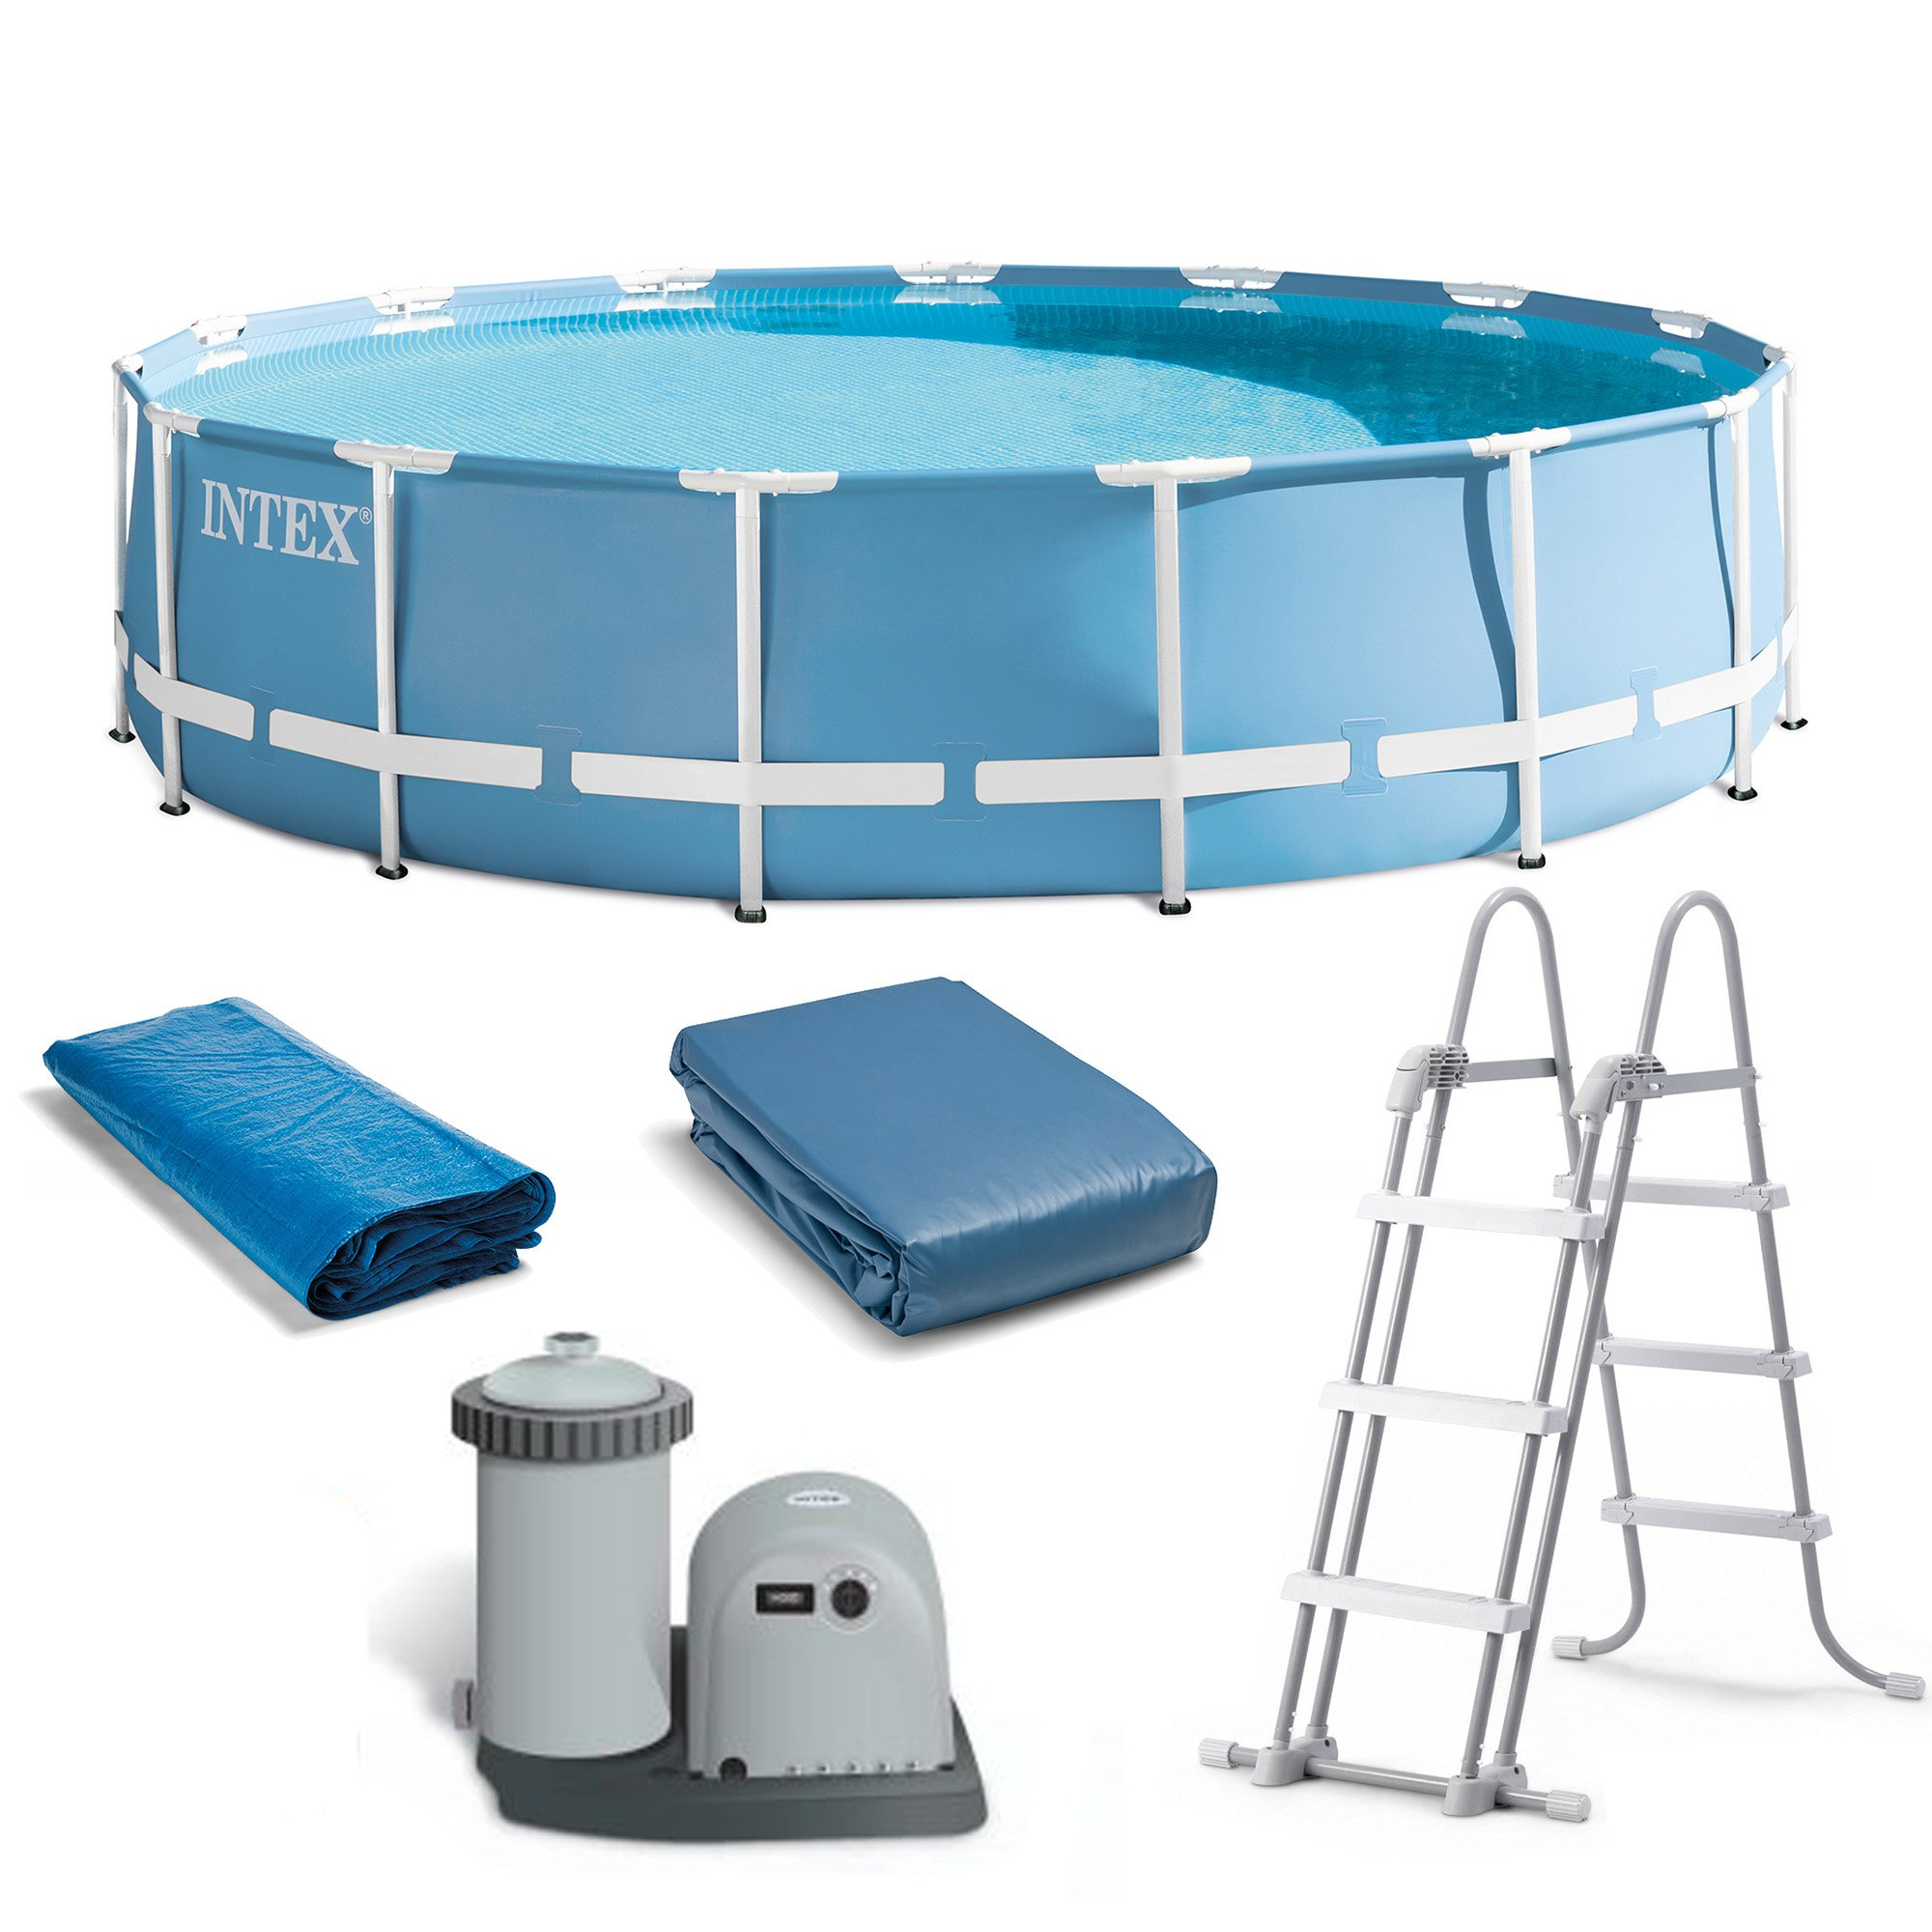 intex 18 feet x 48 inches prism frame pool set w ladder cover pump 26751eh 78257322466 ebay. Black Bedroom Furniture Sets. Home Design Ideas